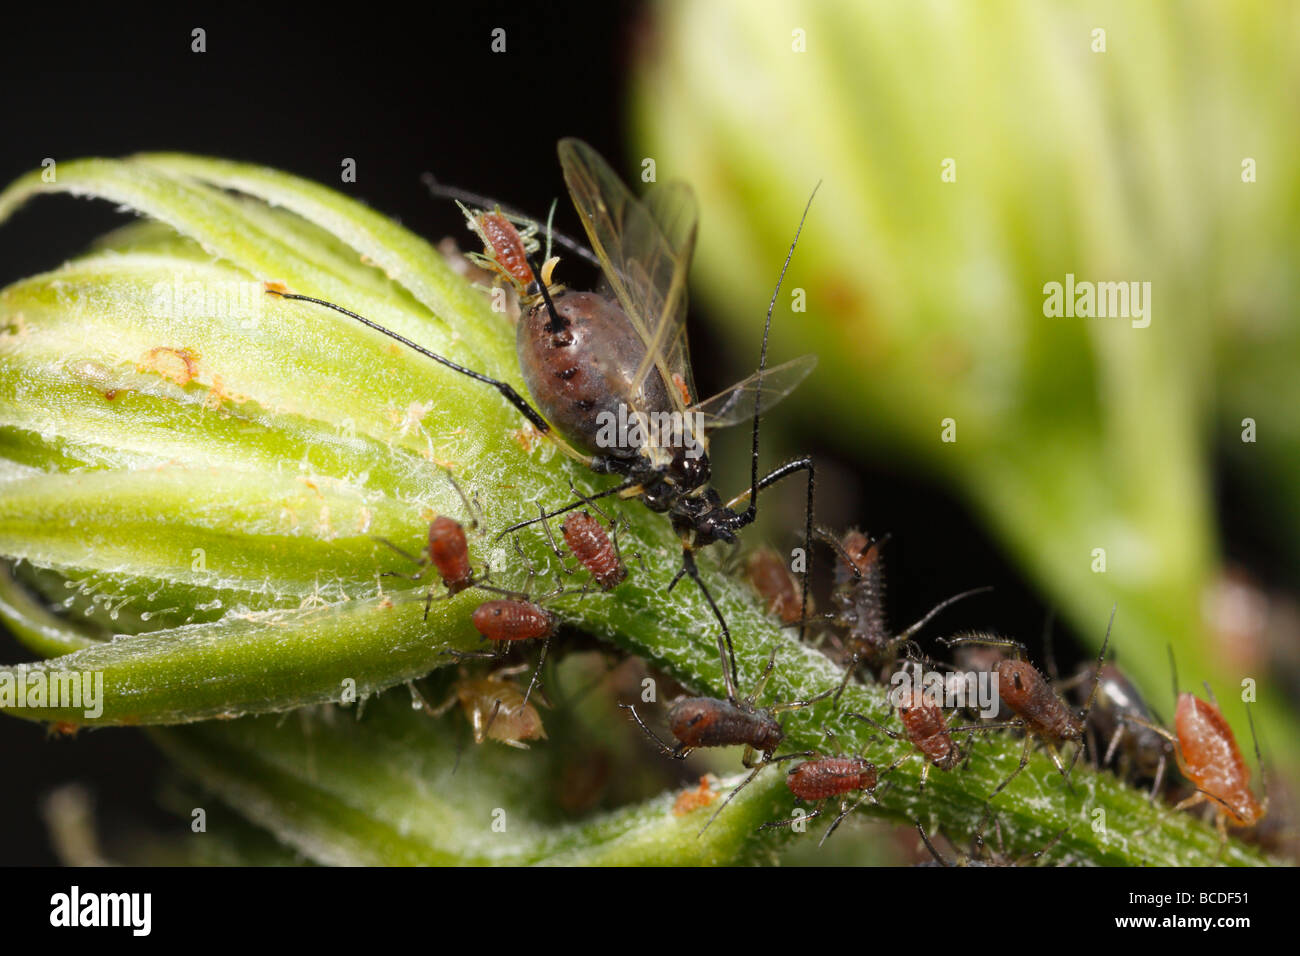 Aphid giving birth. These are probably aphids of the genus Uroleucon. - Stock Image